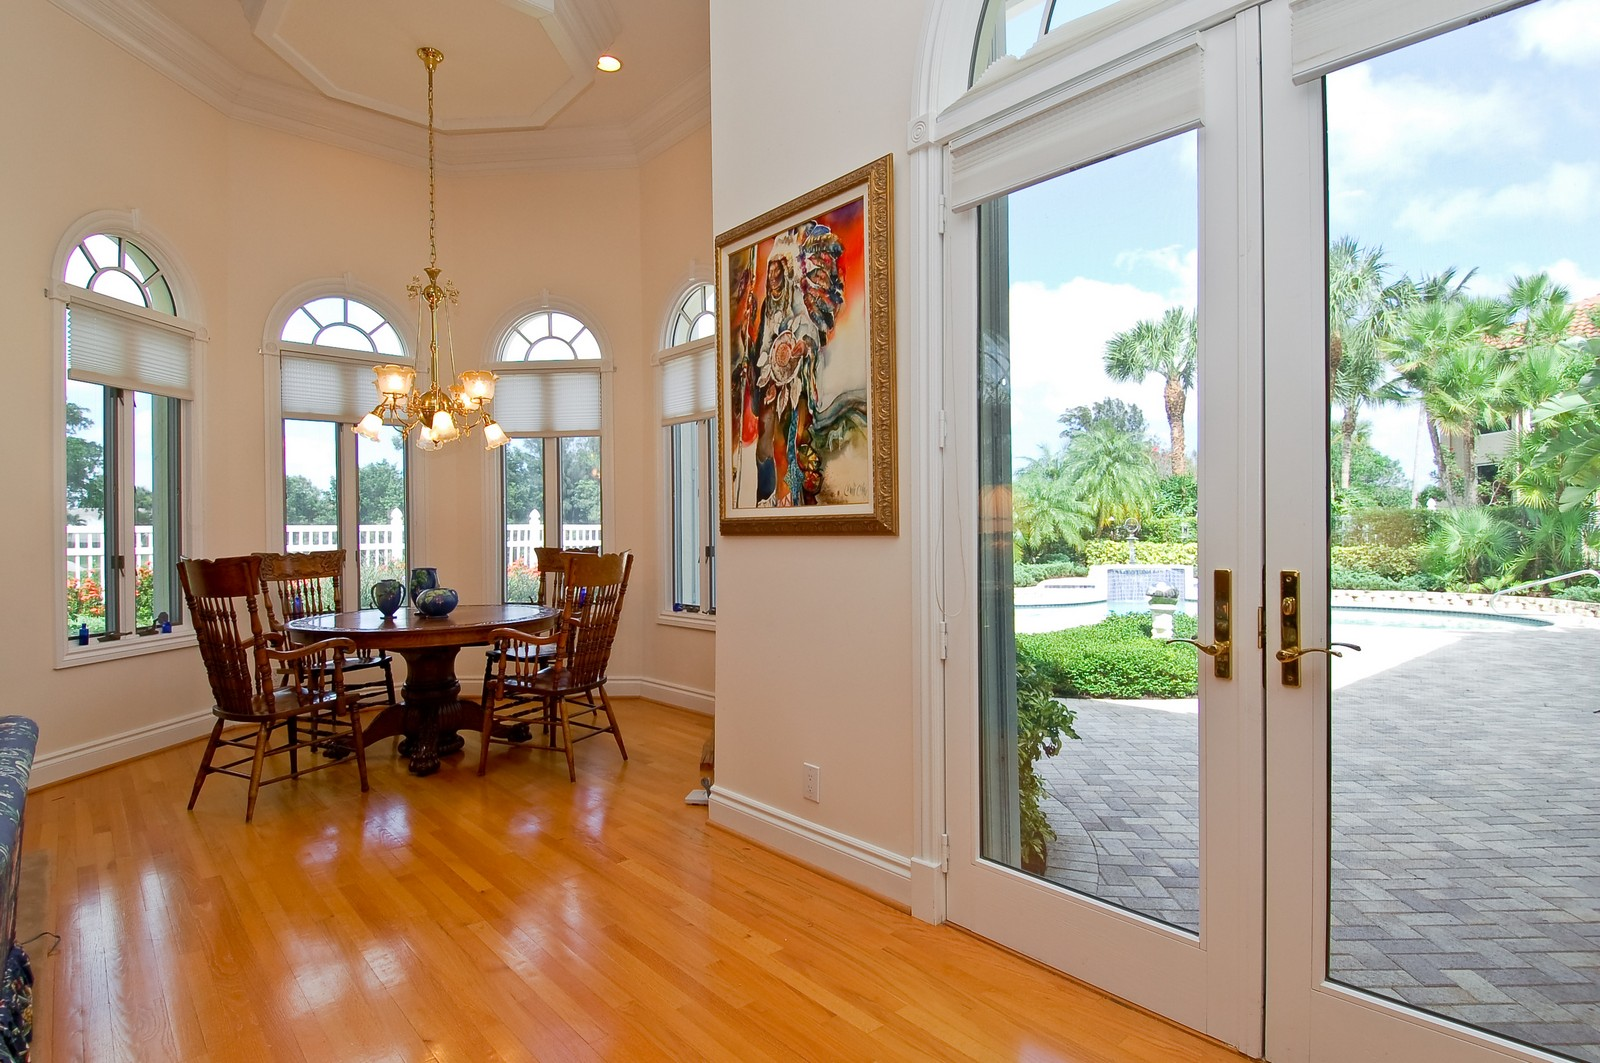 Real Estate Photography - 4252 Bocaire Blvd, Boca Raton, FL, 33487 - Breakfast Area